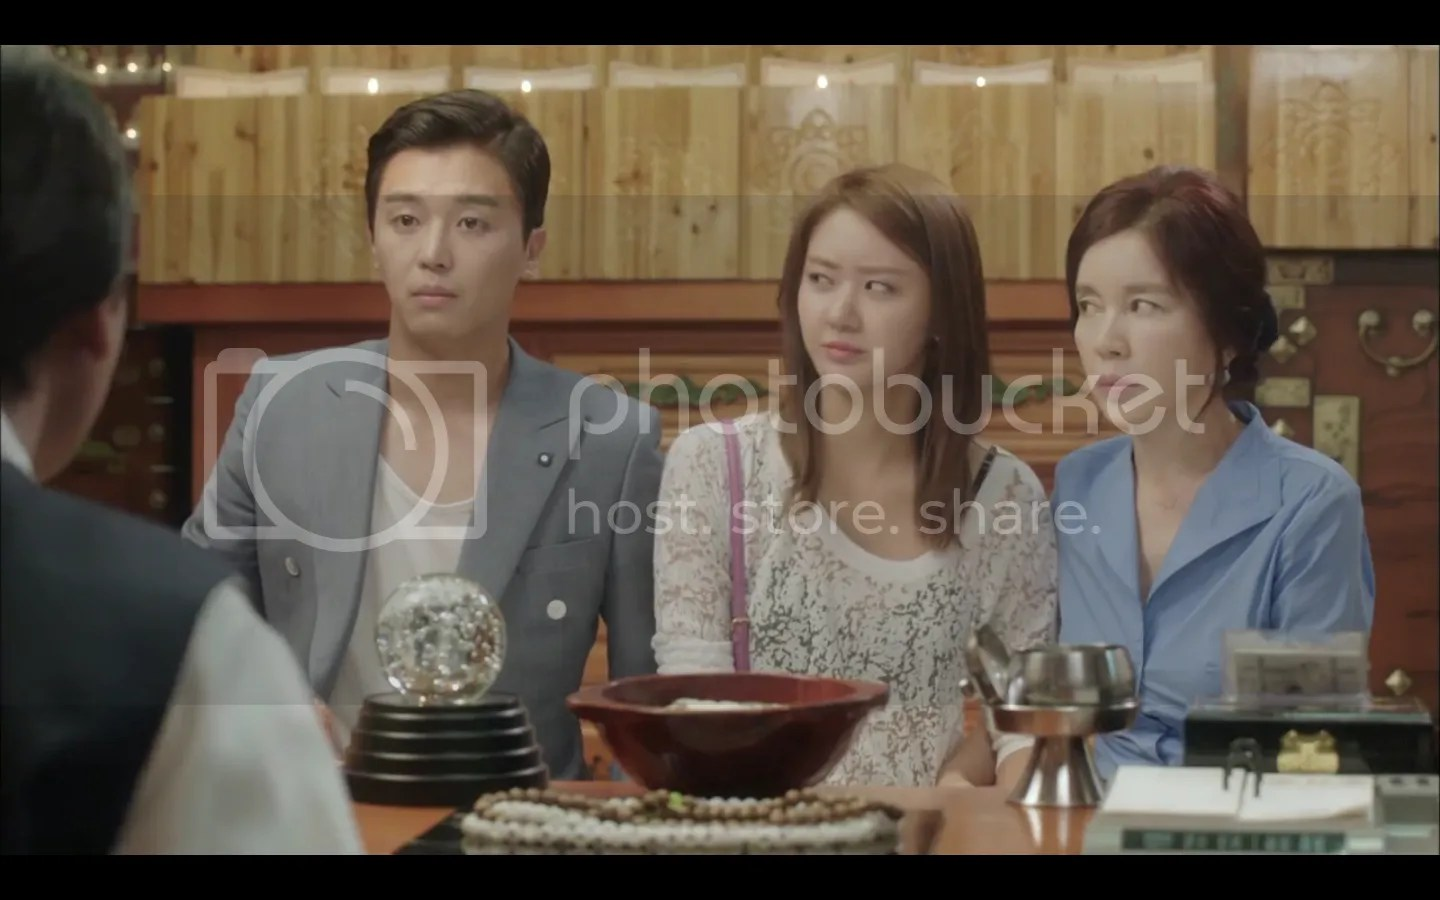 Hard going watch marriage not dating: episode 9 recap ep 11 captures for.